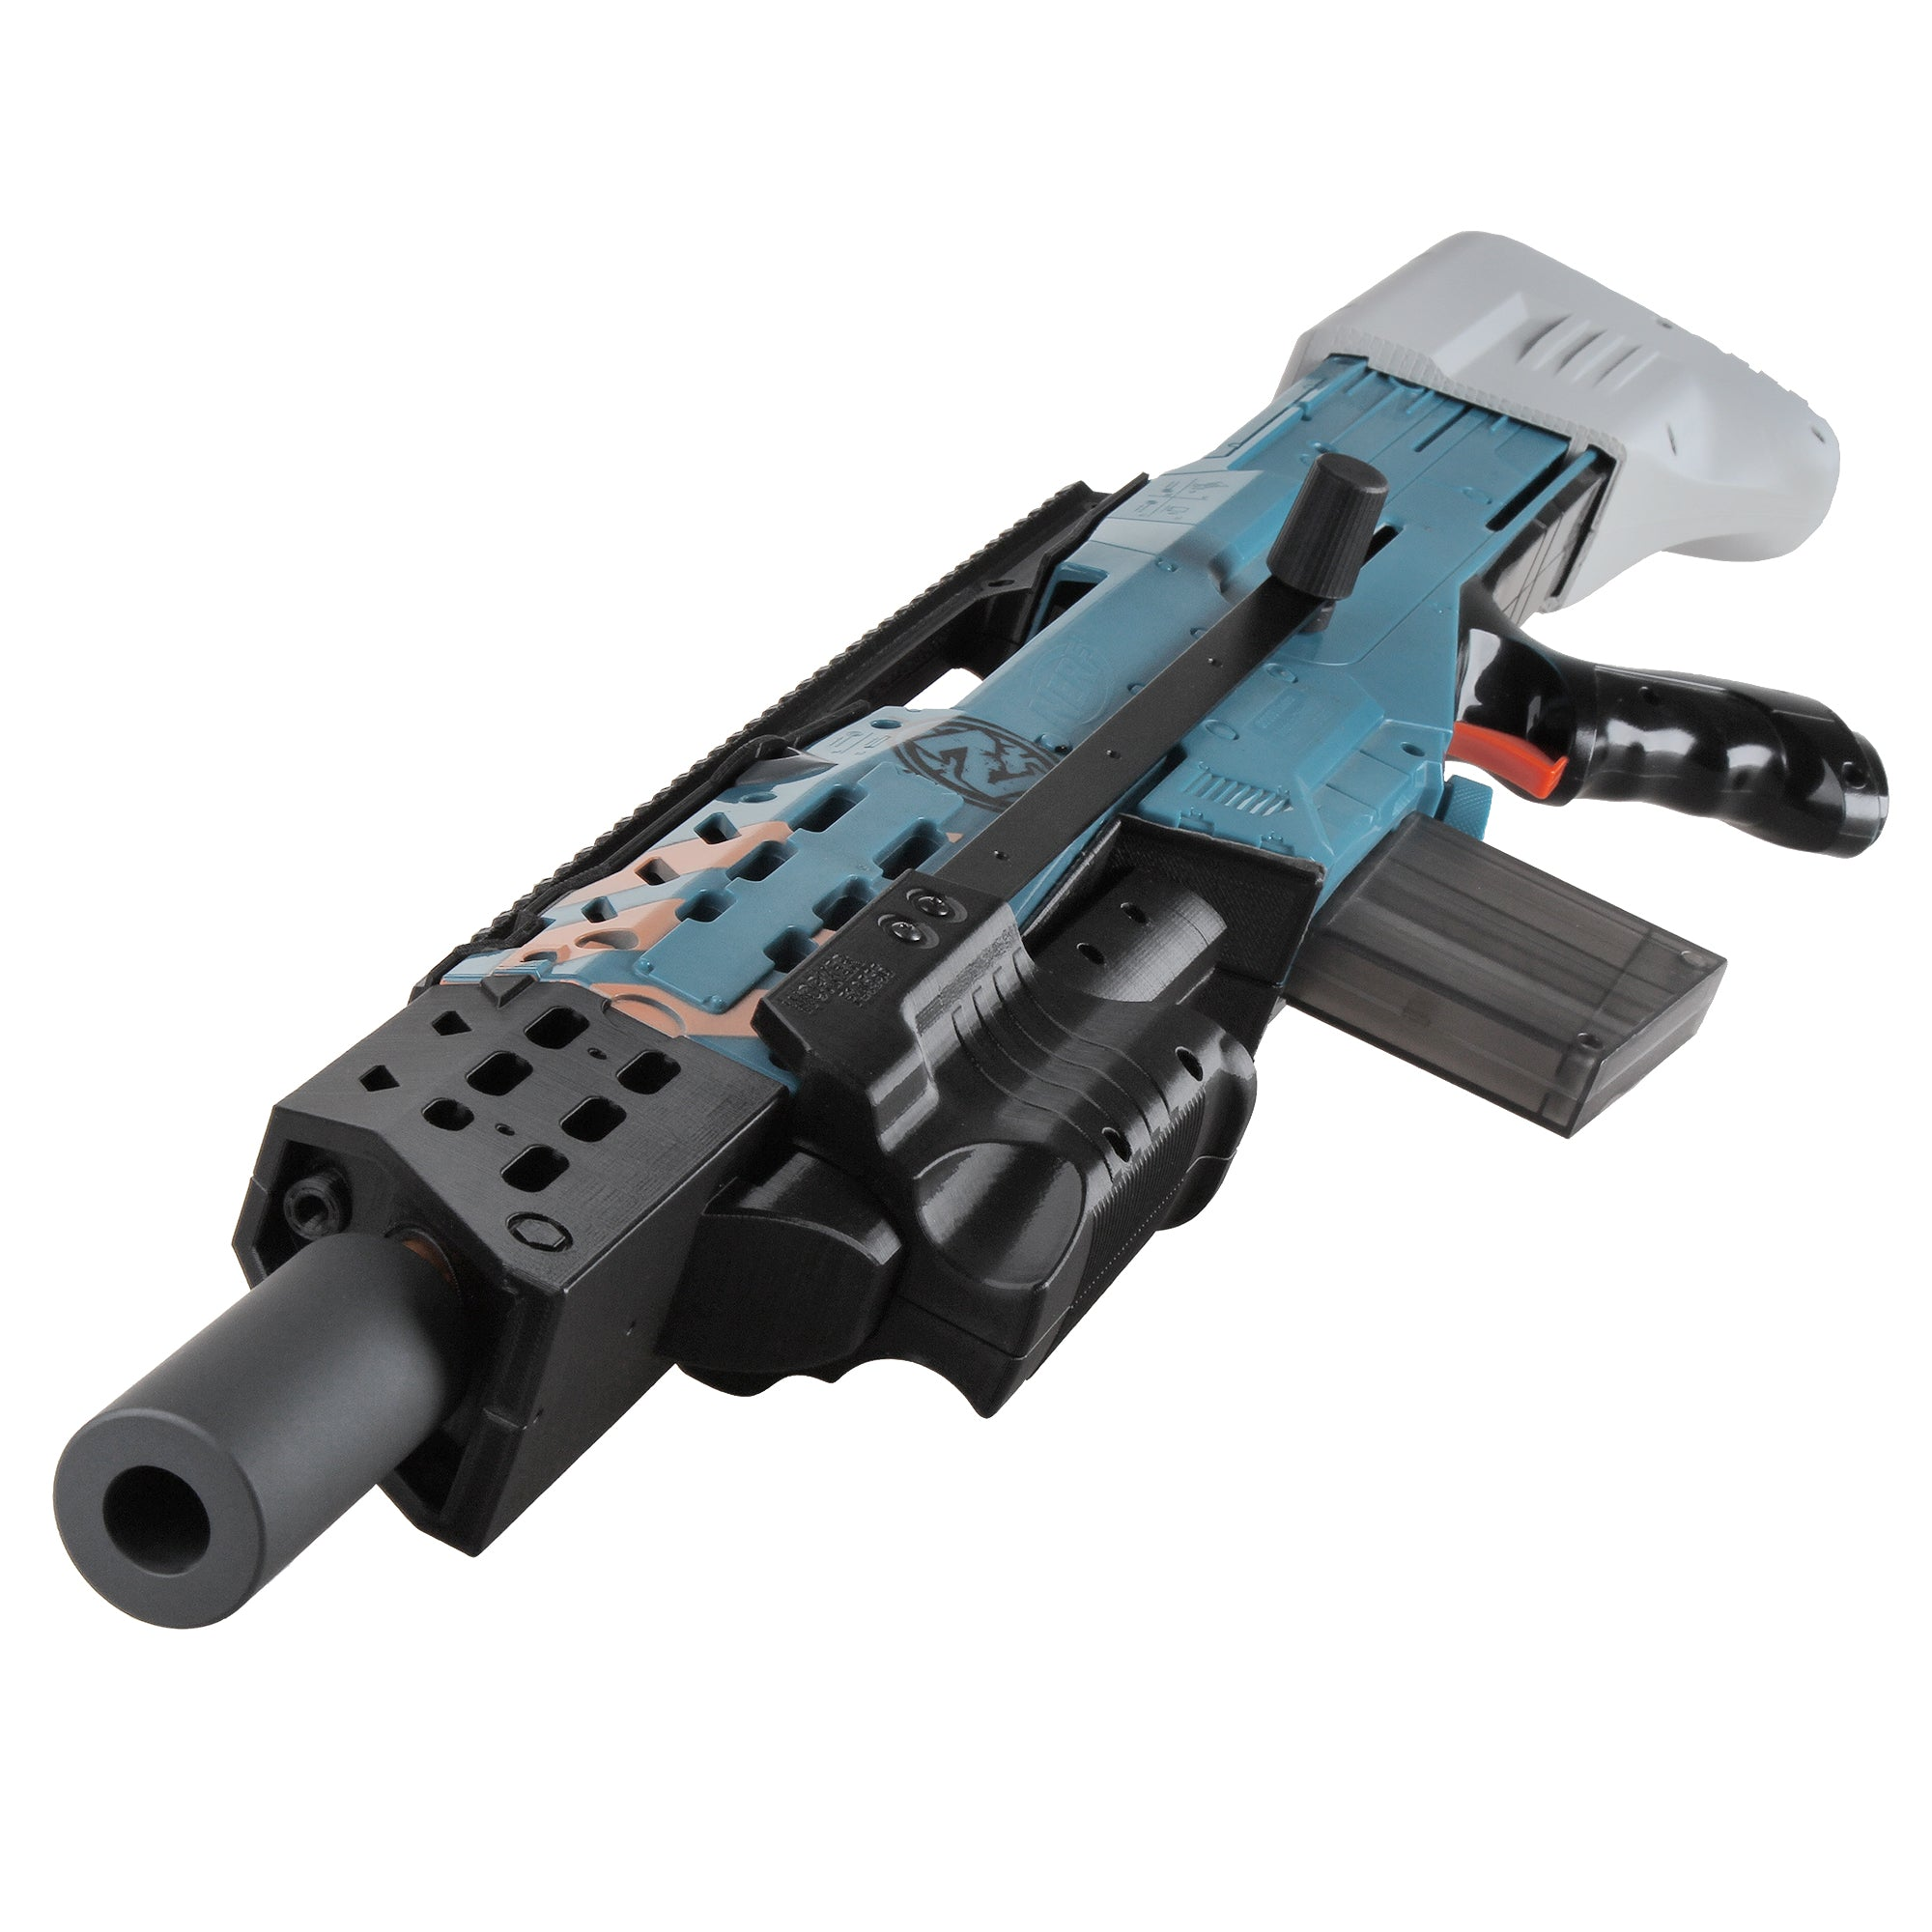 JGCWorker F10555 3D Printed CJ-001-1 Kits Set for Nerf Zombie Strike ZED Squad Longshot CS-12 Blaster - Nerf Mod Kits -Worker Mod Kits